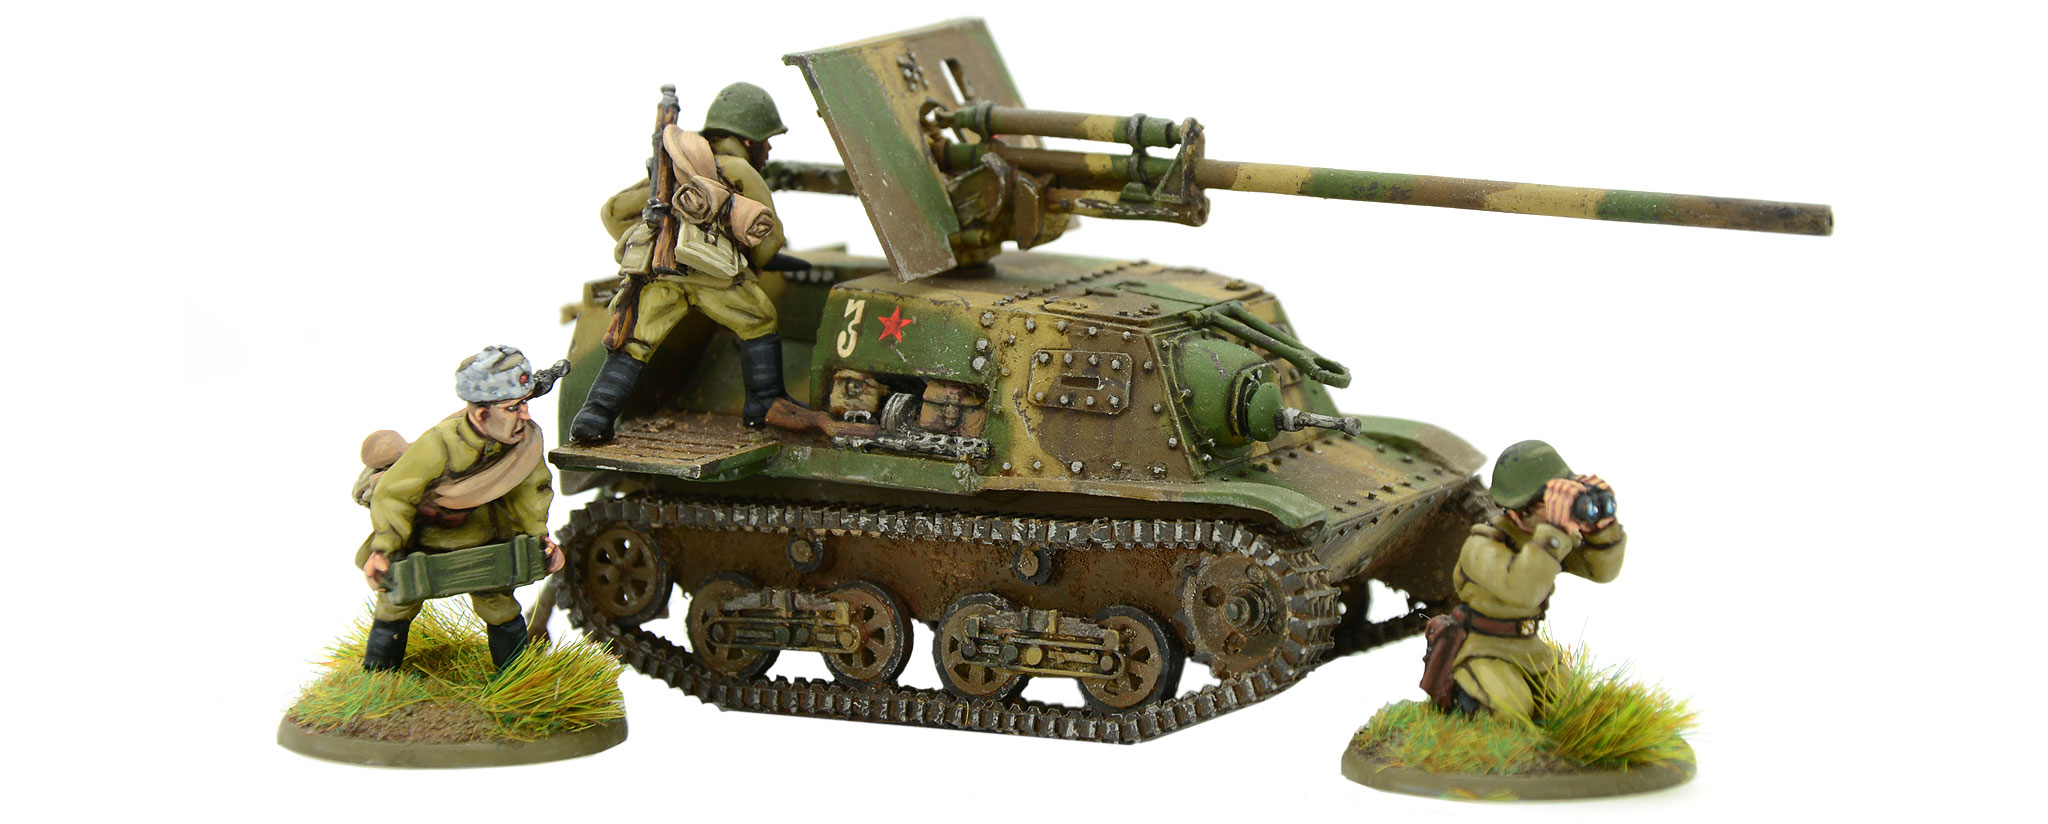 New Bolt Action Soviet Zis 30 Self Propelled Gun